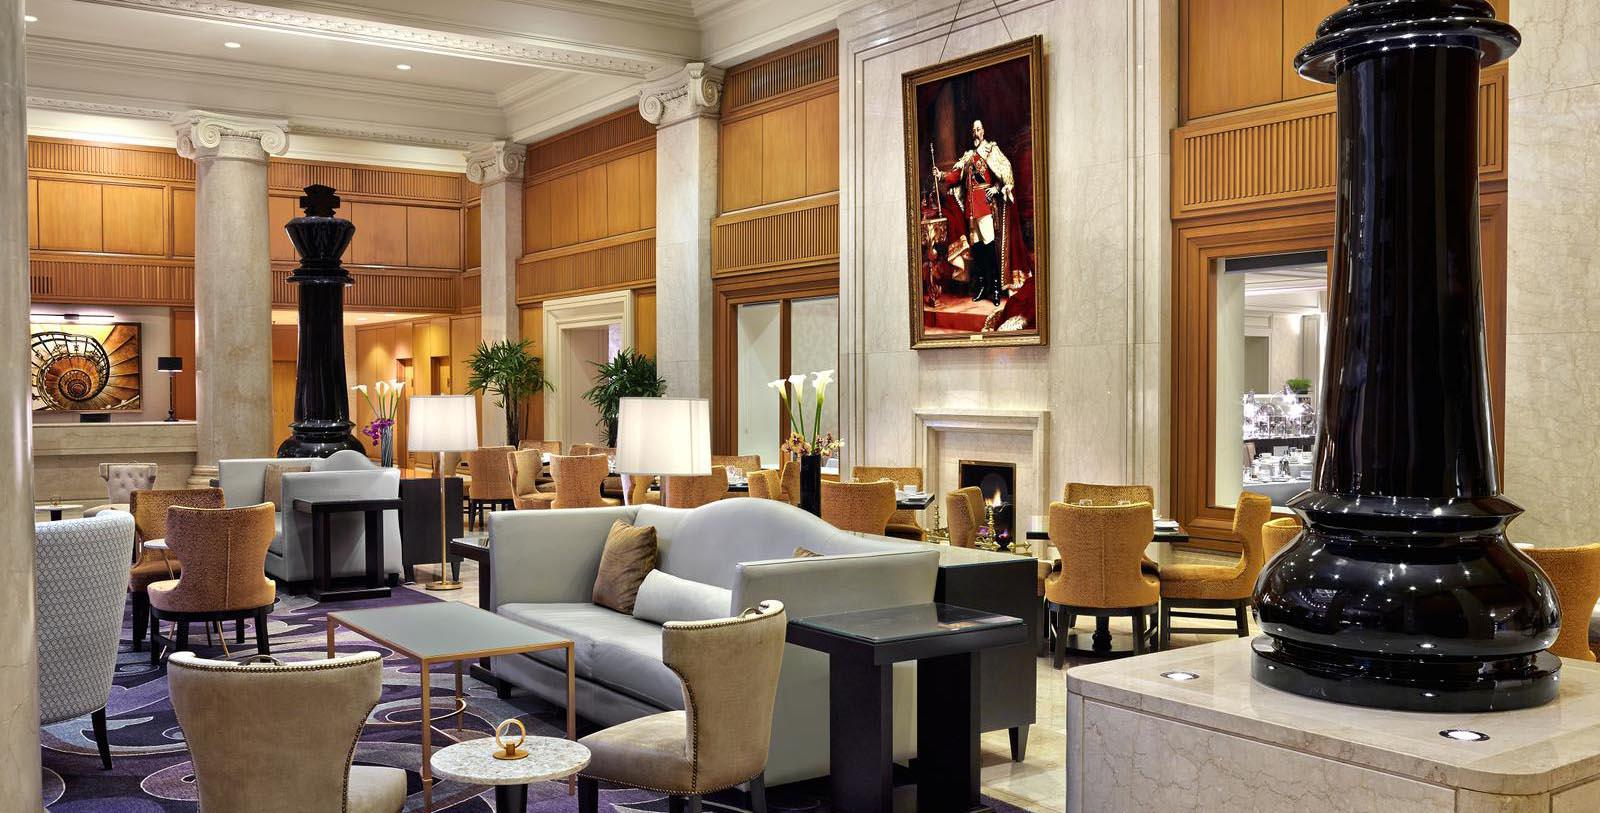 Image of Hotel Lobby at The Omni King Edward Hotel, 1903, Member of Historic Hotels Worldwide, in Toronto, Ontario, Canada, Explore